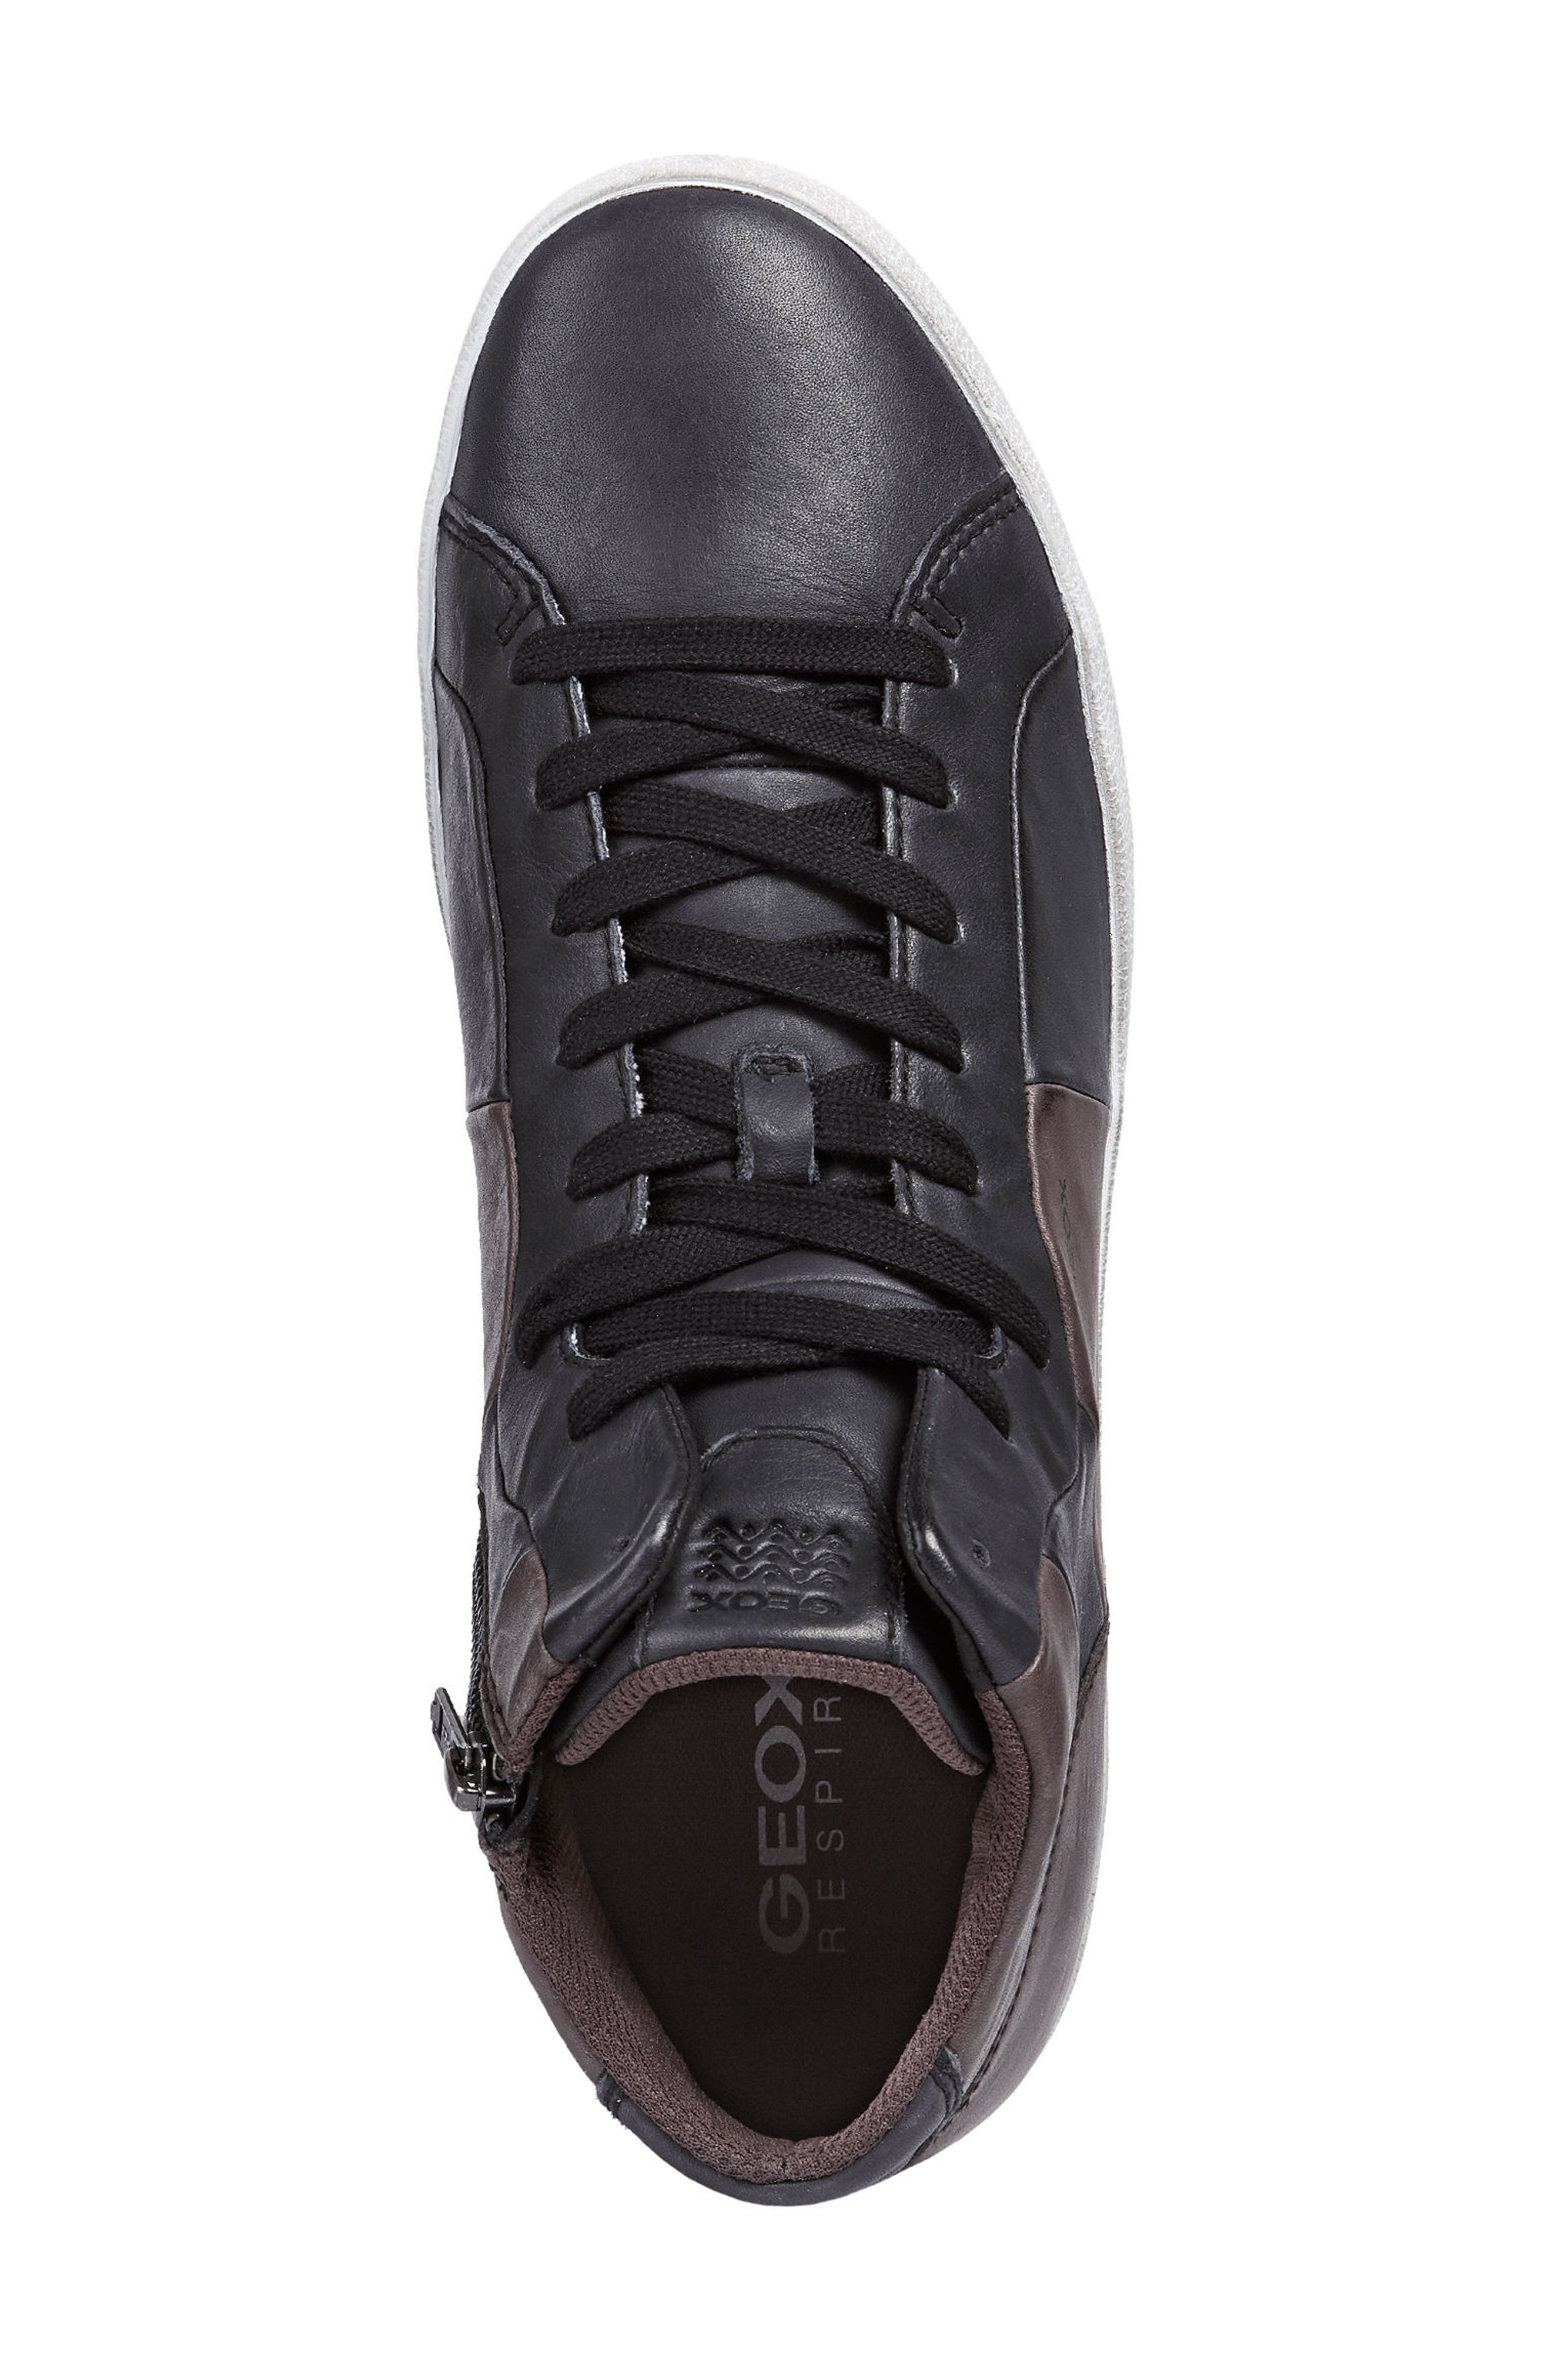 Smart 84 High Top Sneaker,                             Alternate thumbnail 5, color,                             BLACK/ COFFEE LEATHER